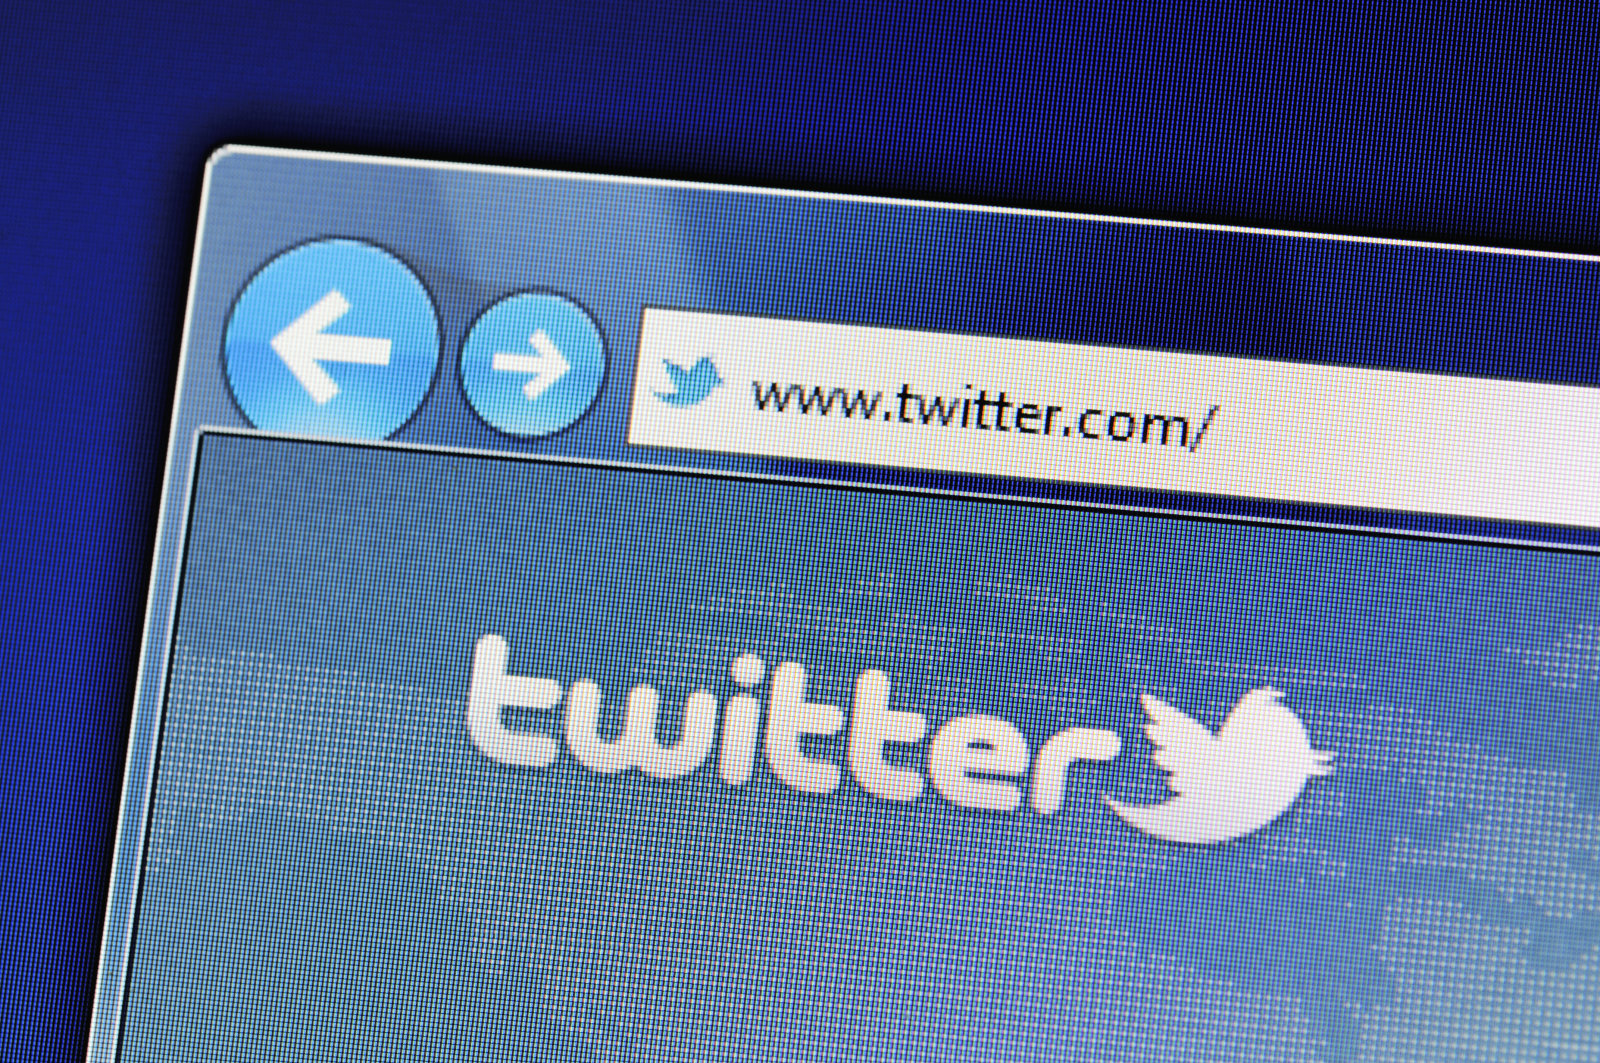 """""""Muenster, Germany - May 23, 2011: The twitter website is displayed in web browser on a computer screen. Twitter is a social networking and microblogging service and enabling its users to send and read messages."""""""